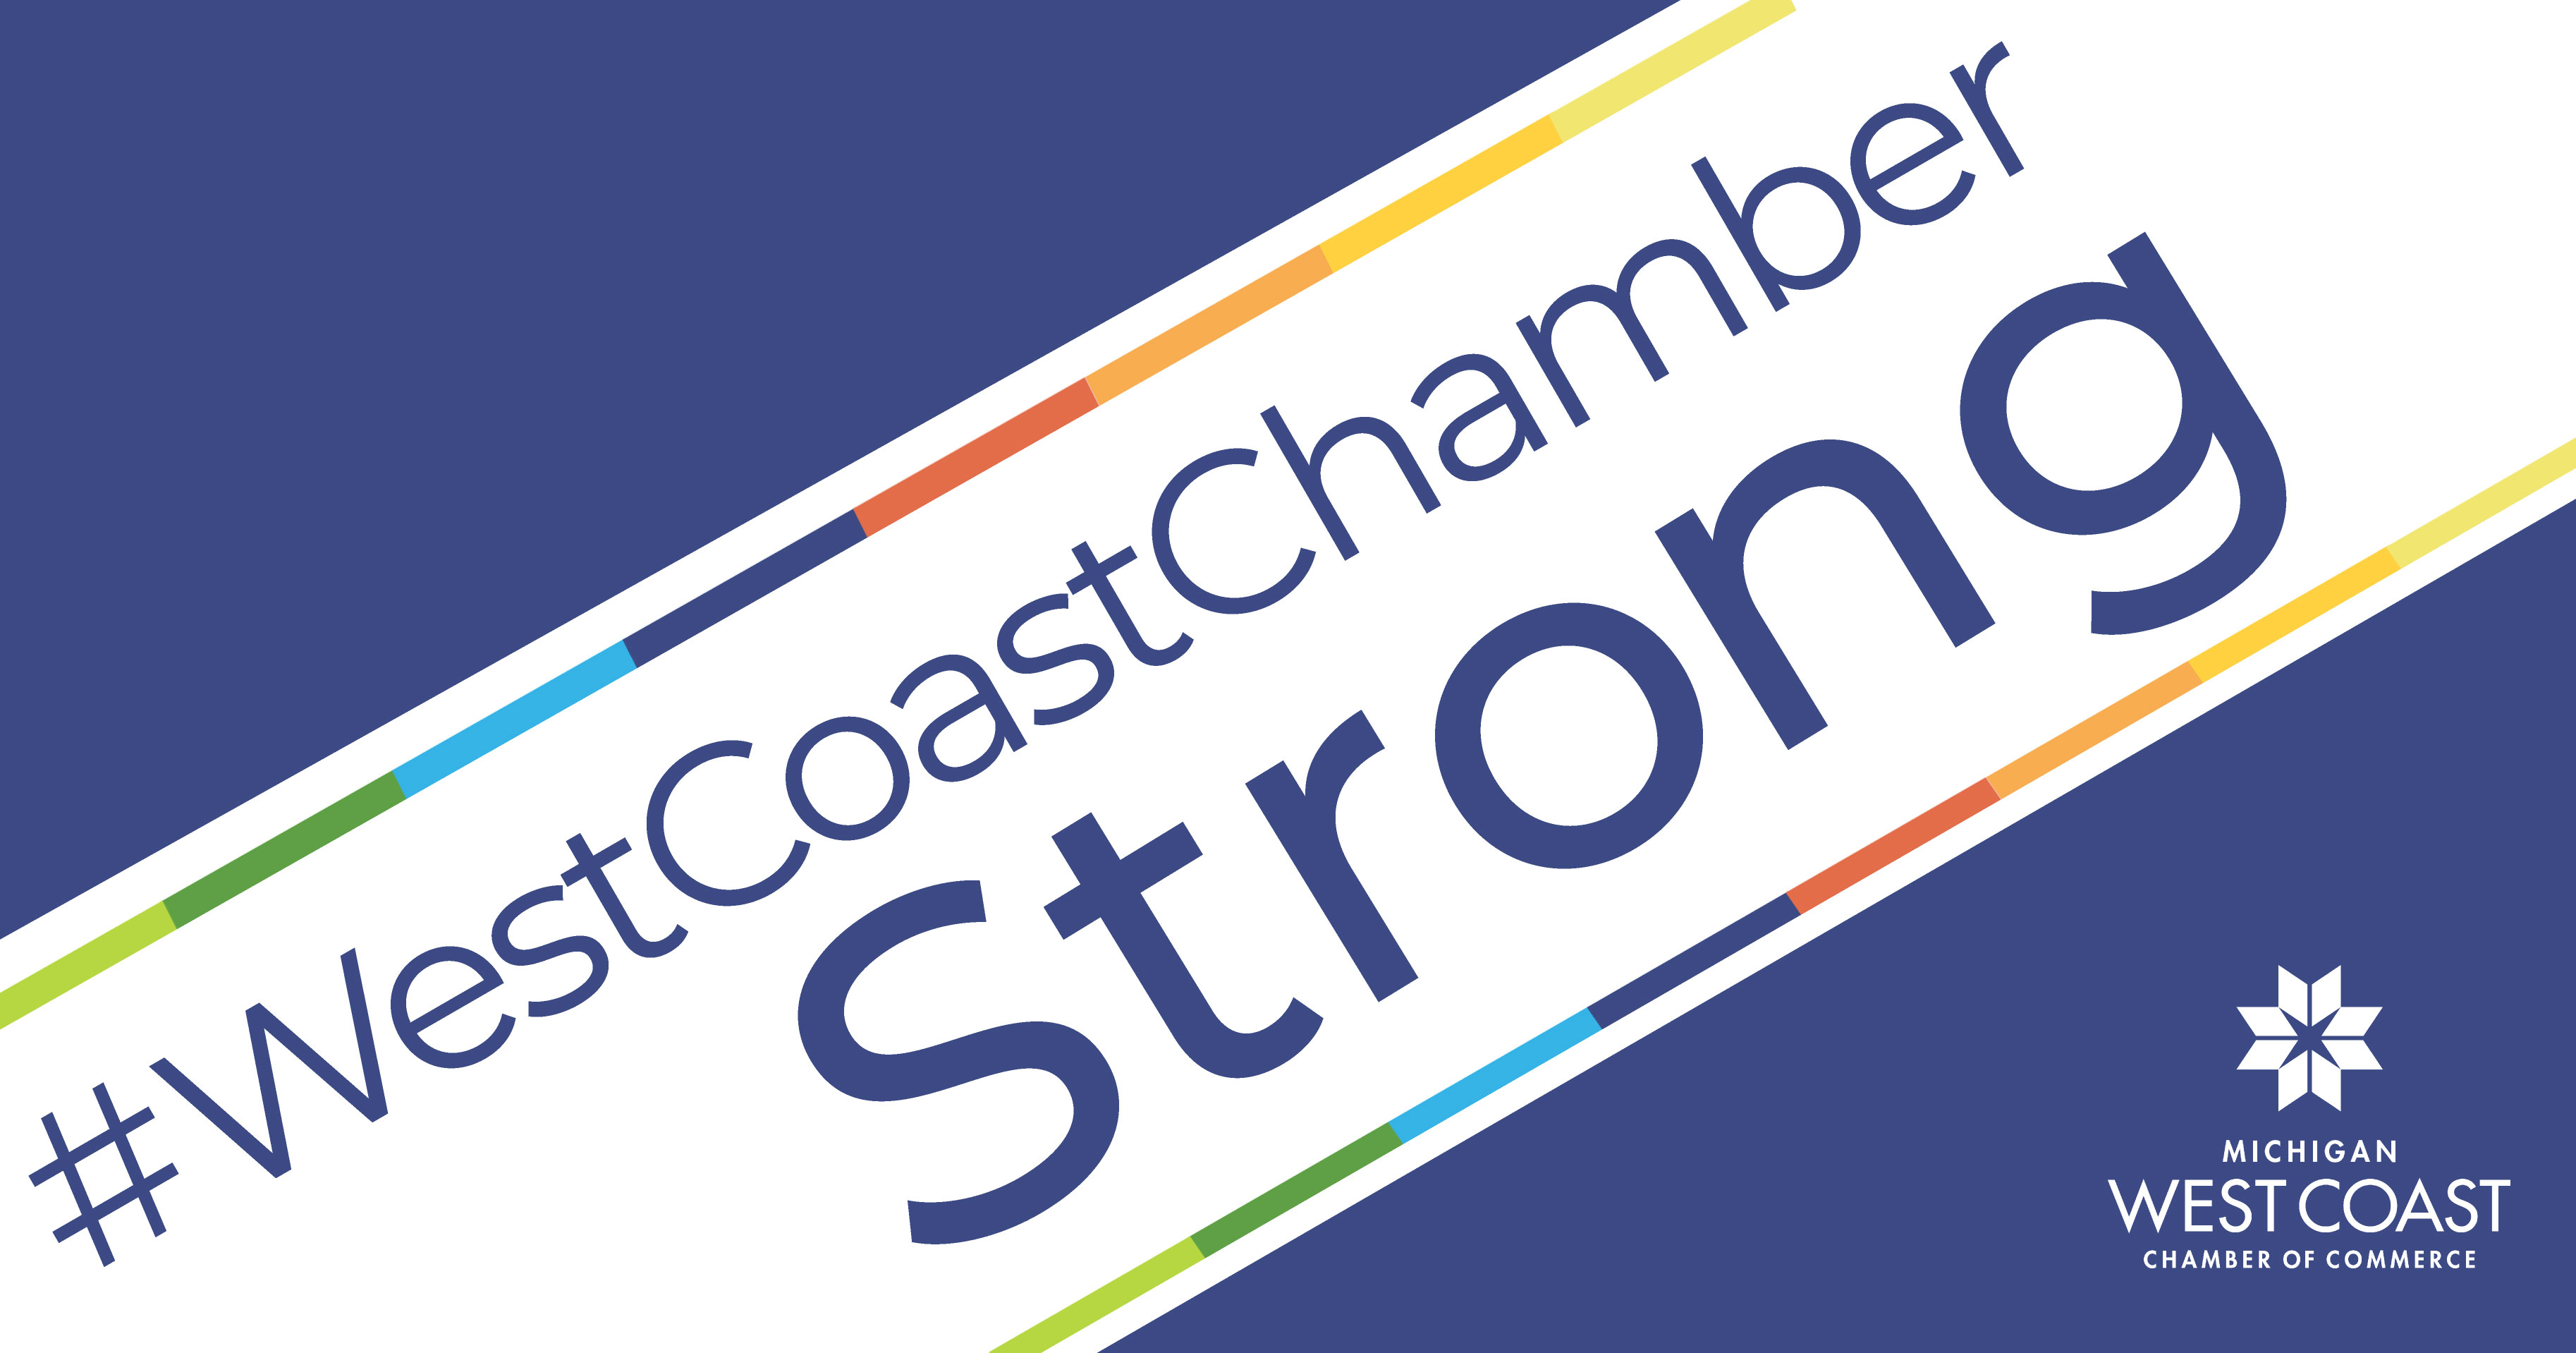 Sept-2020-West-Coast-Chamber-Strong-WHITE-LOGO